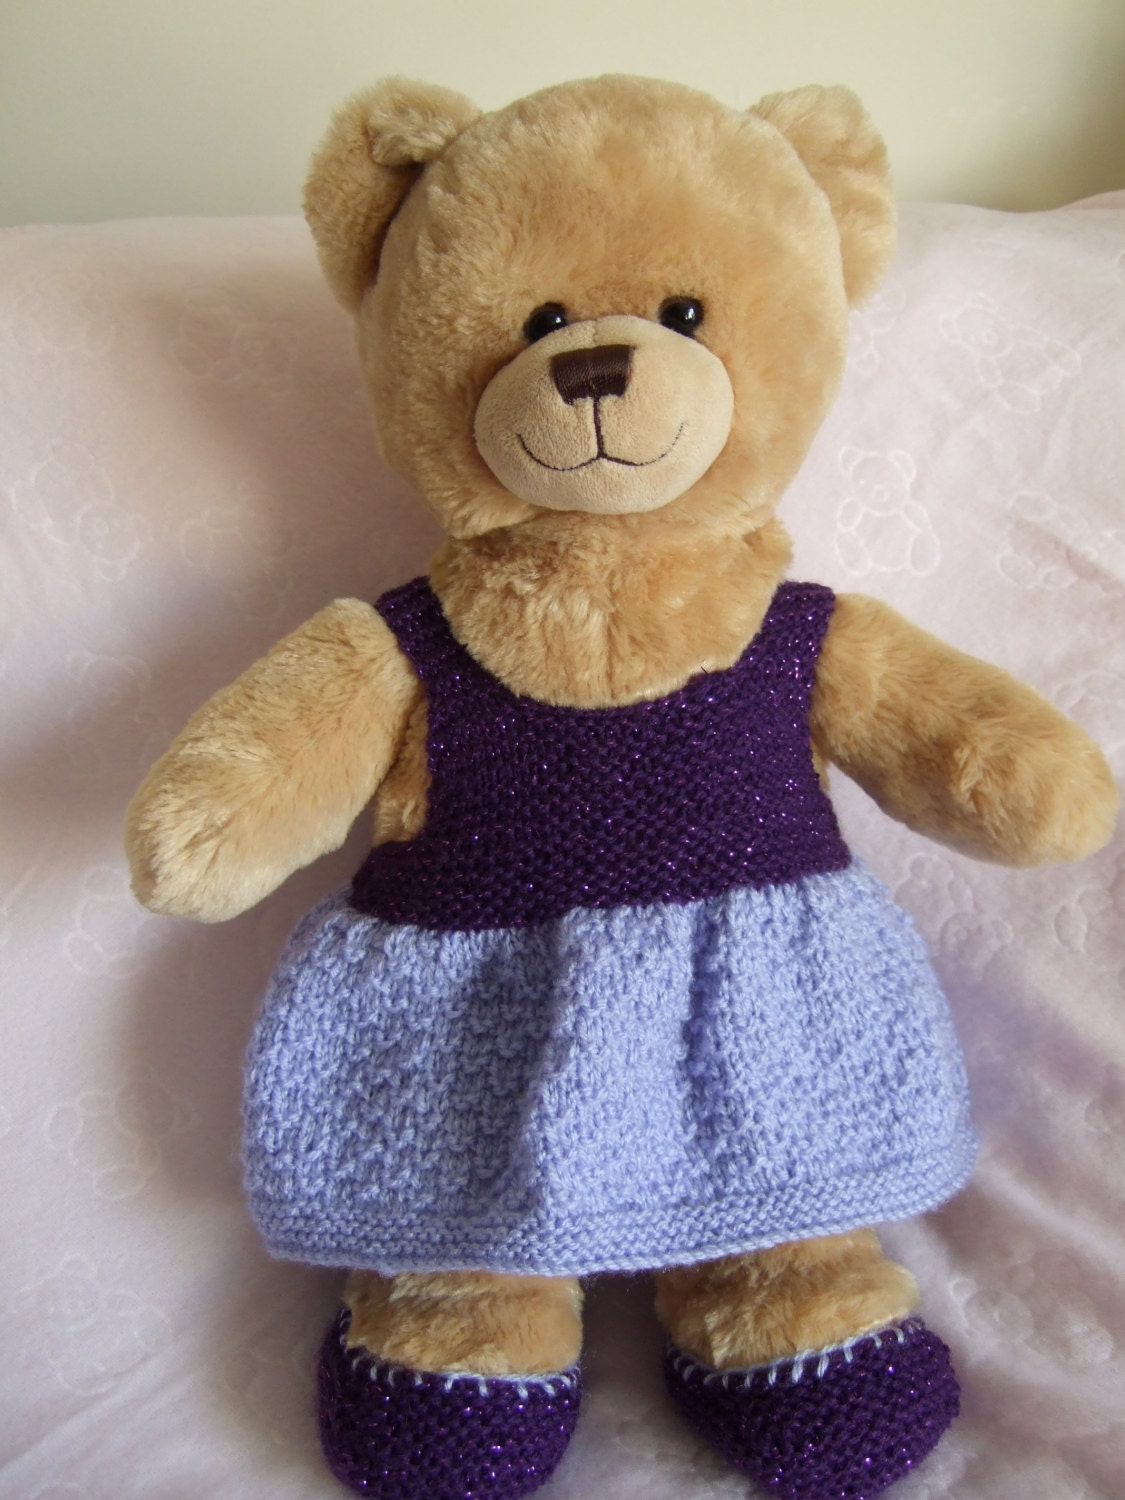 Hand Knitted 16 Teddy Bear Build a Bear Dress  Shoes. Build a Bear Accessories. Teddy Bear Accessories. Party Dress. Girls Birthday Gift